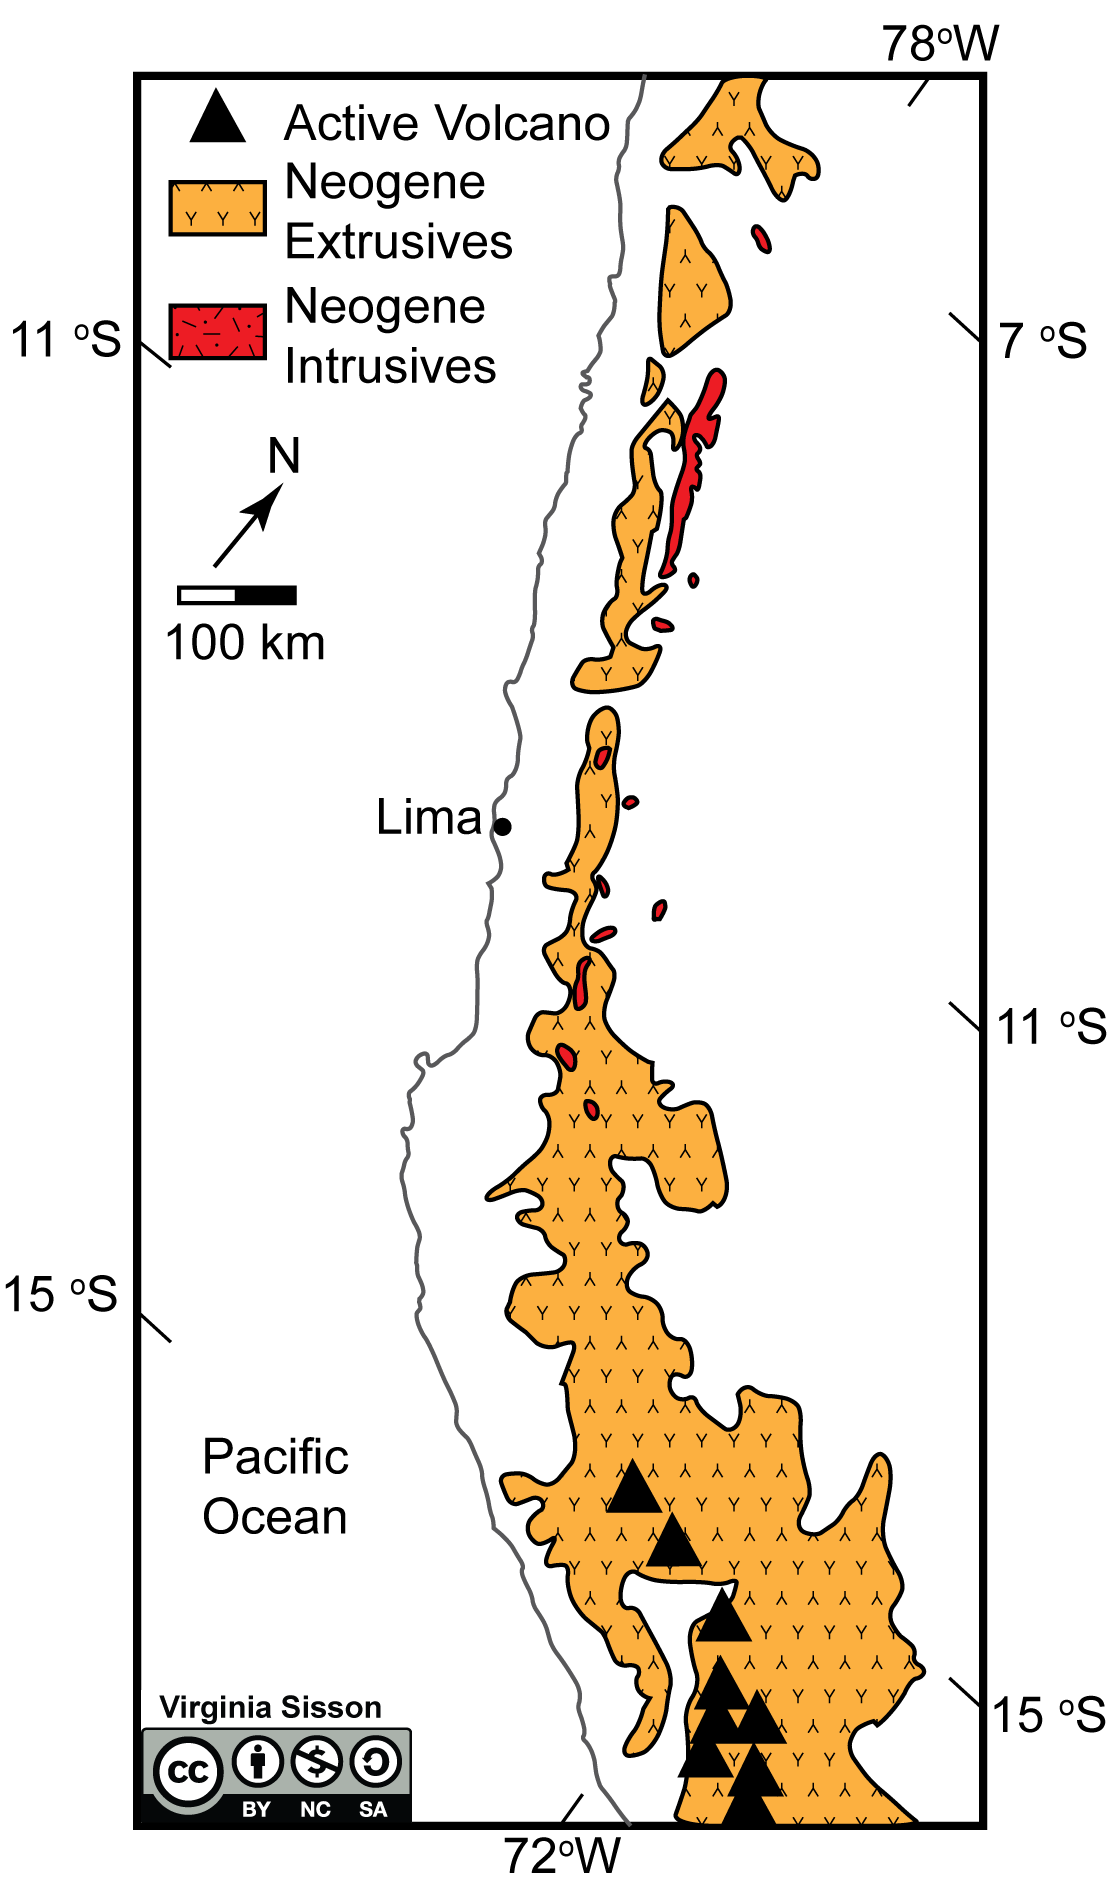 This map shows igneous rocks (extrusive in orange, intrusive in red) and volcanoes from a region in Peru.